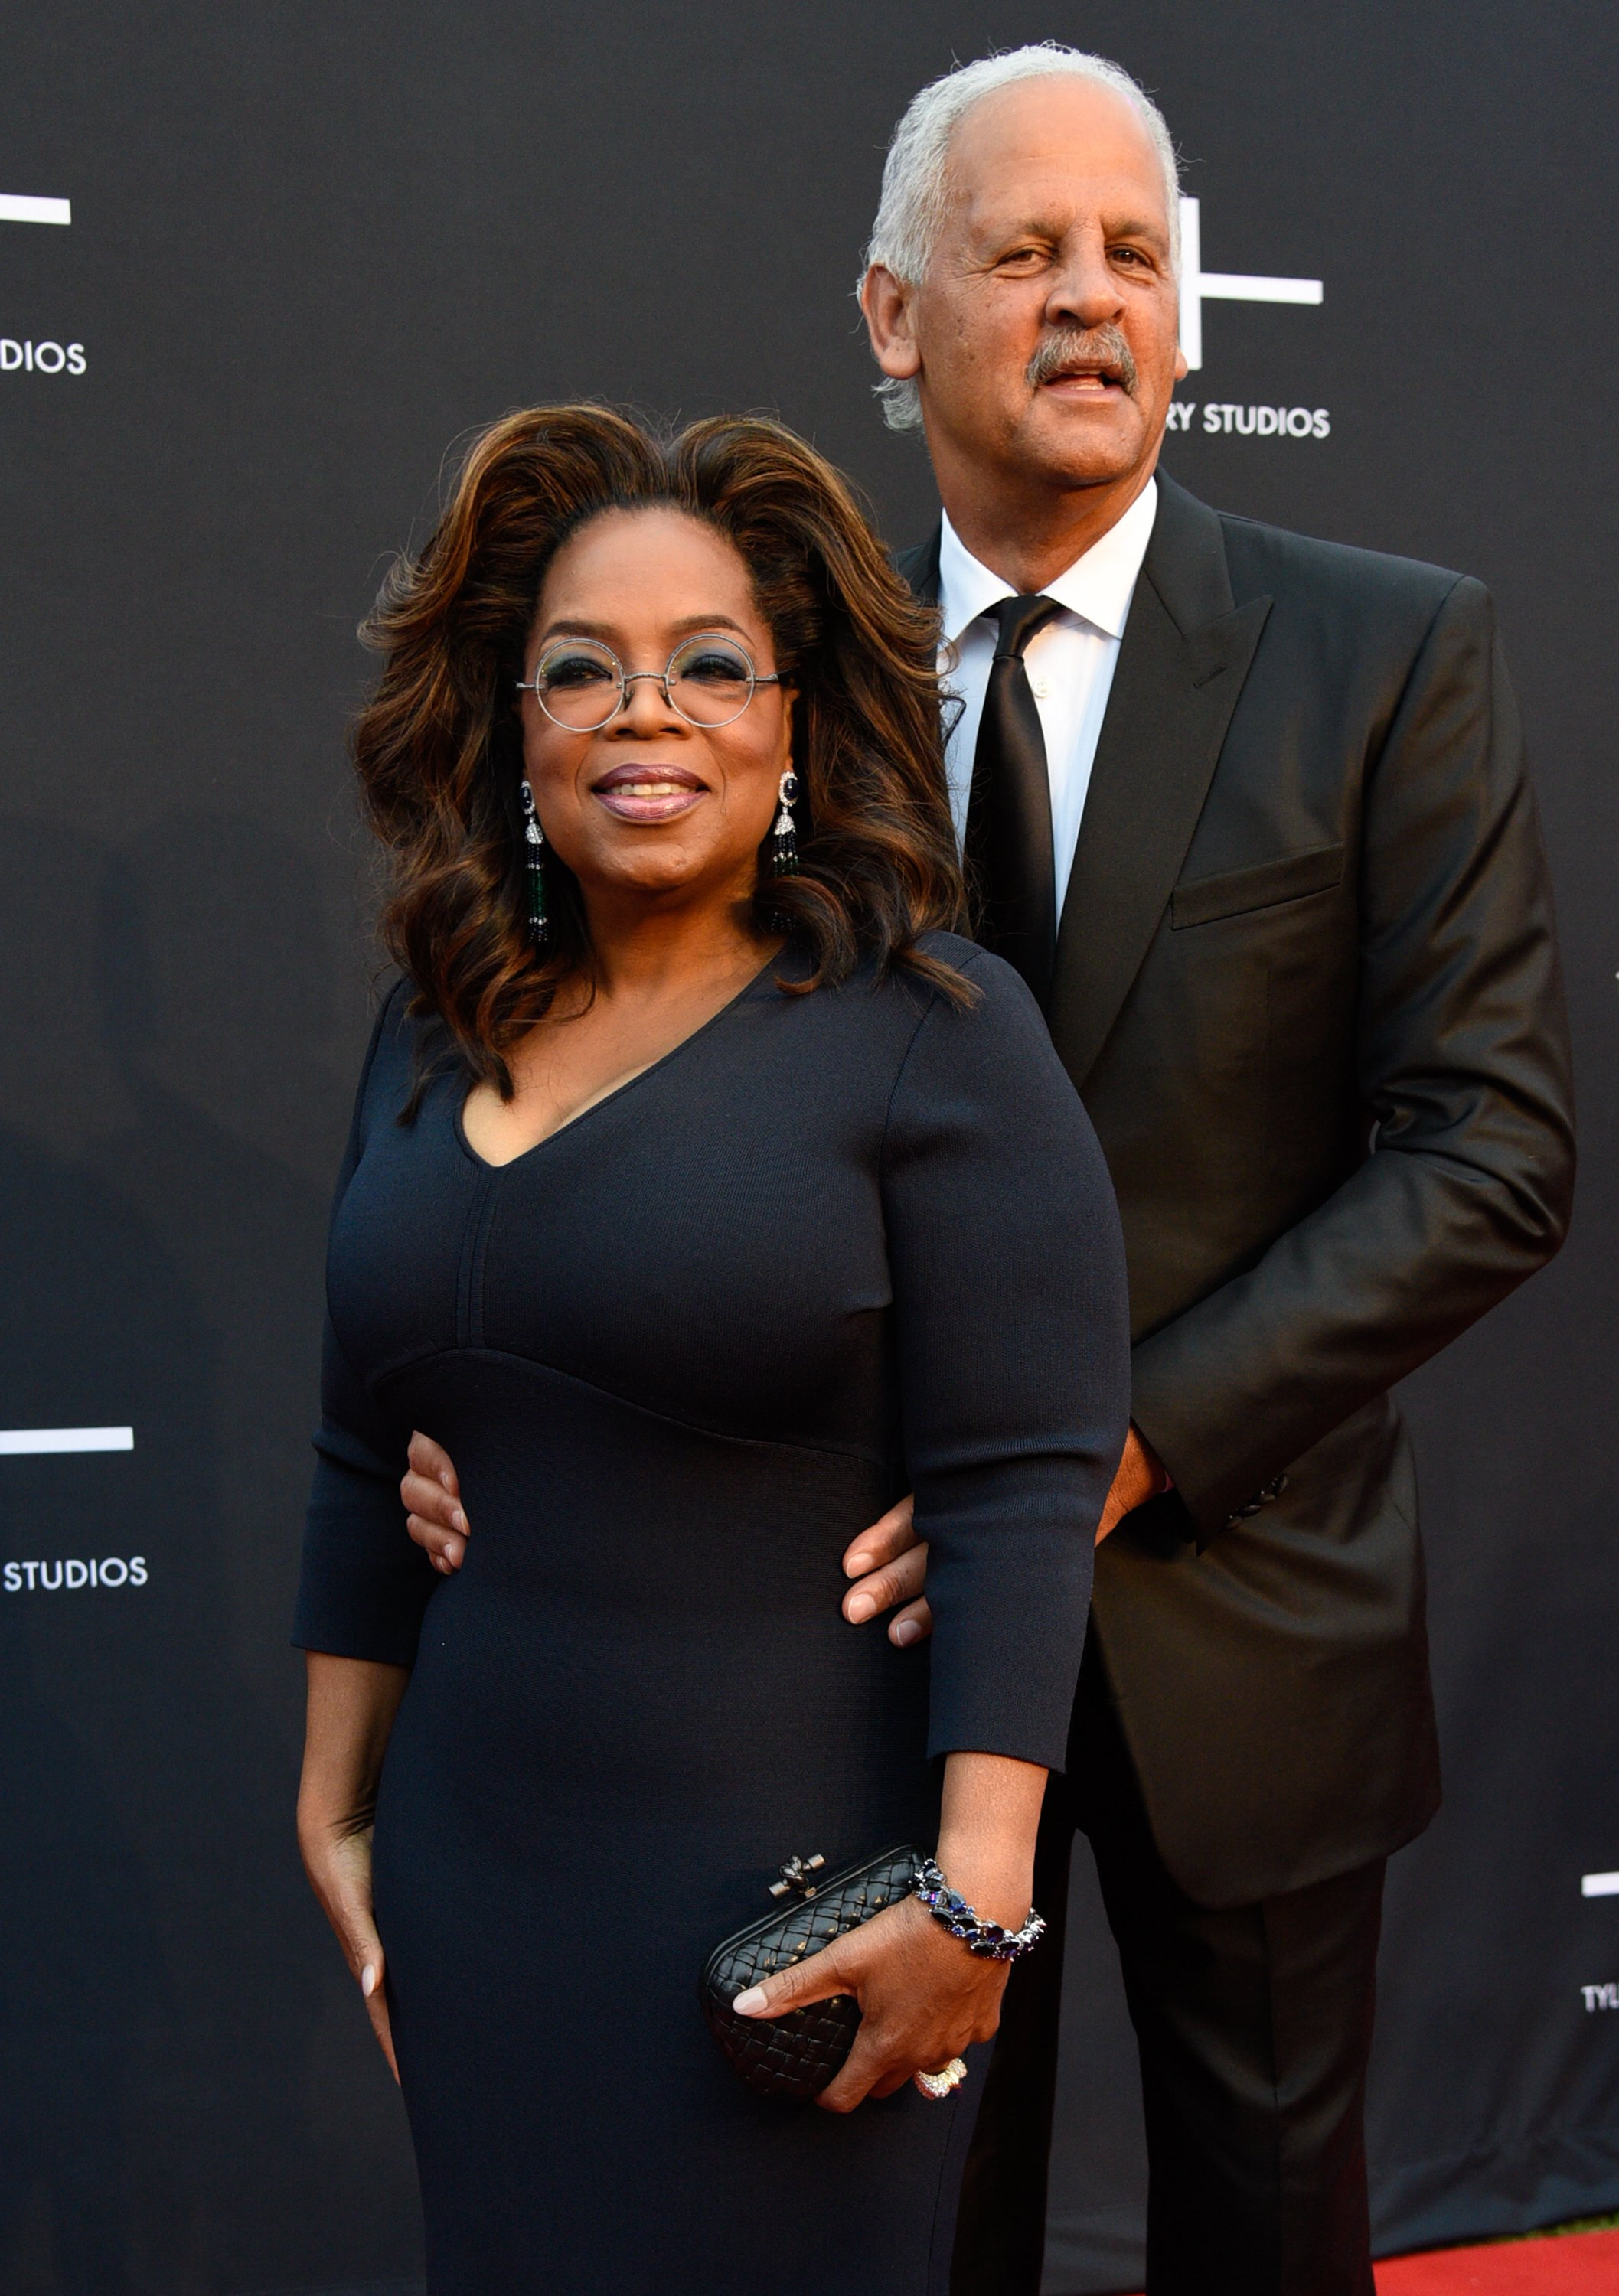 Oprah Winfrey and Stedman Graham attend Tyler Perry Studios grand opening gala on October 05, 2019, in Atlanta, Georgia. | Source: Getty Images.